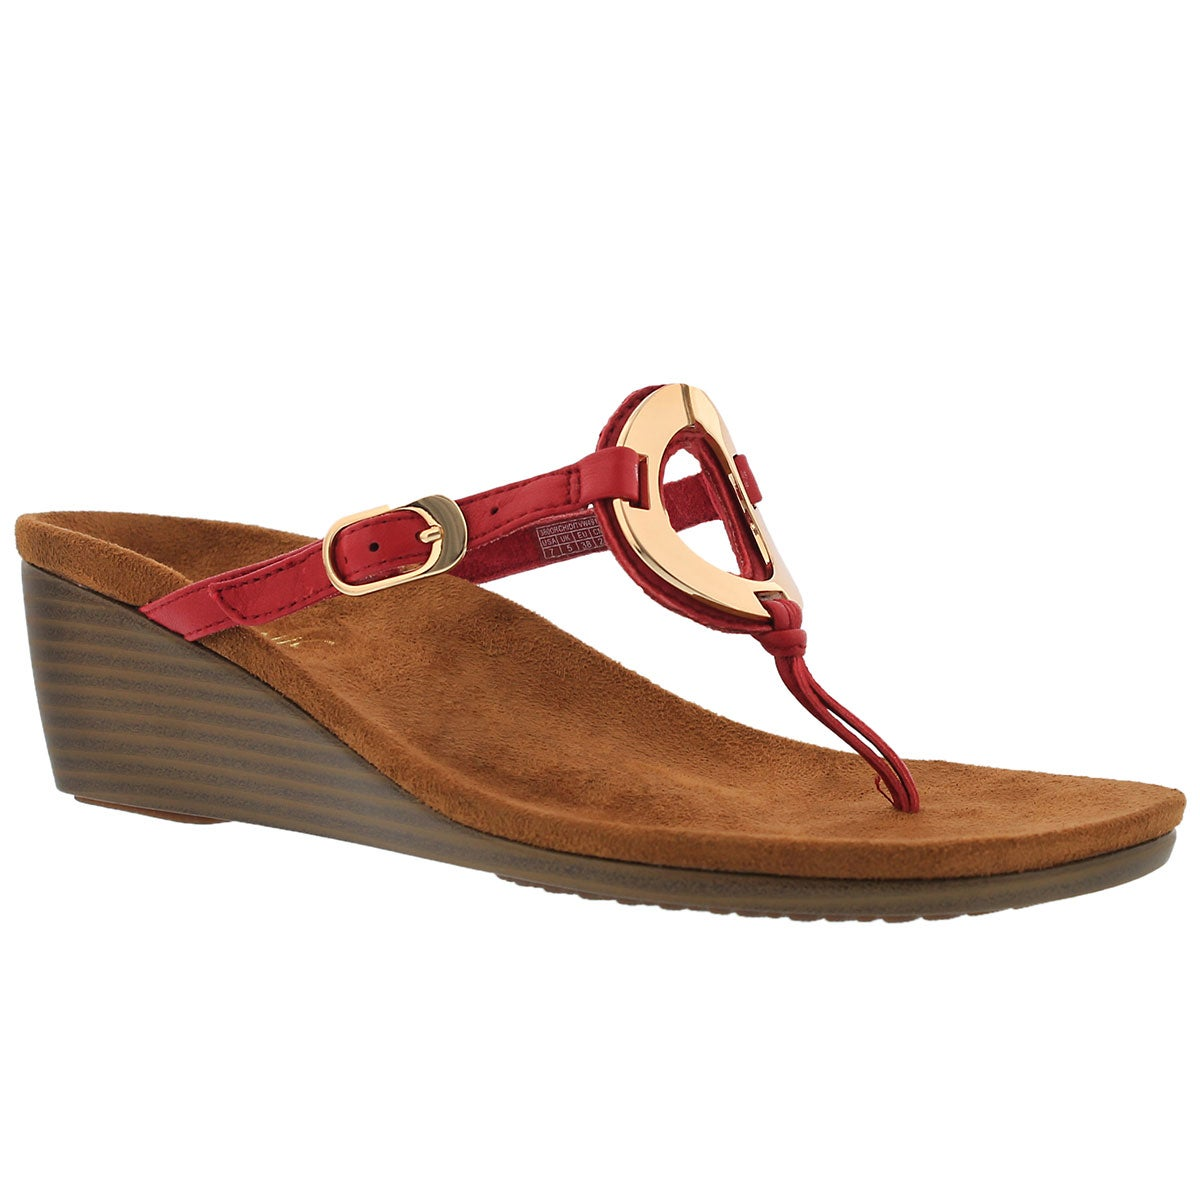 Women's ORCHID red arch support thong sandals